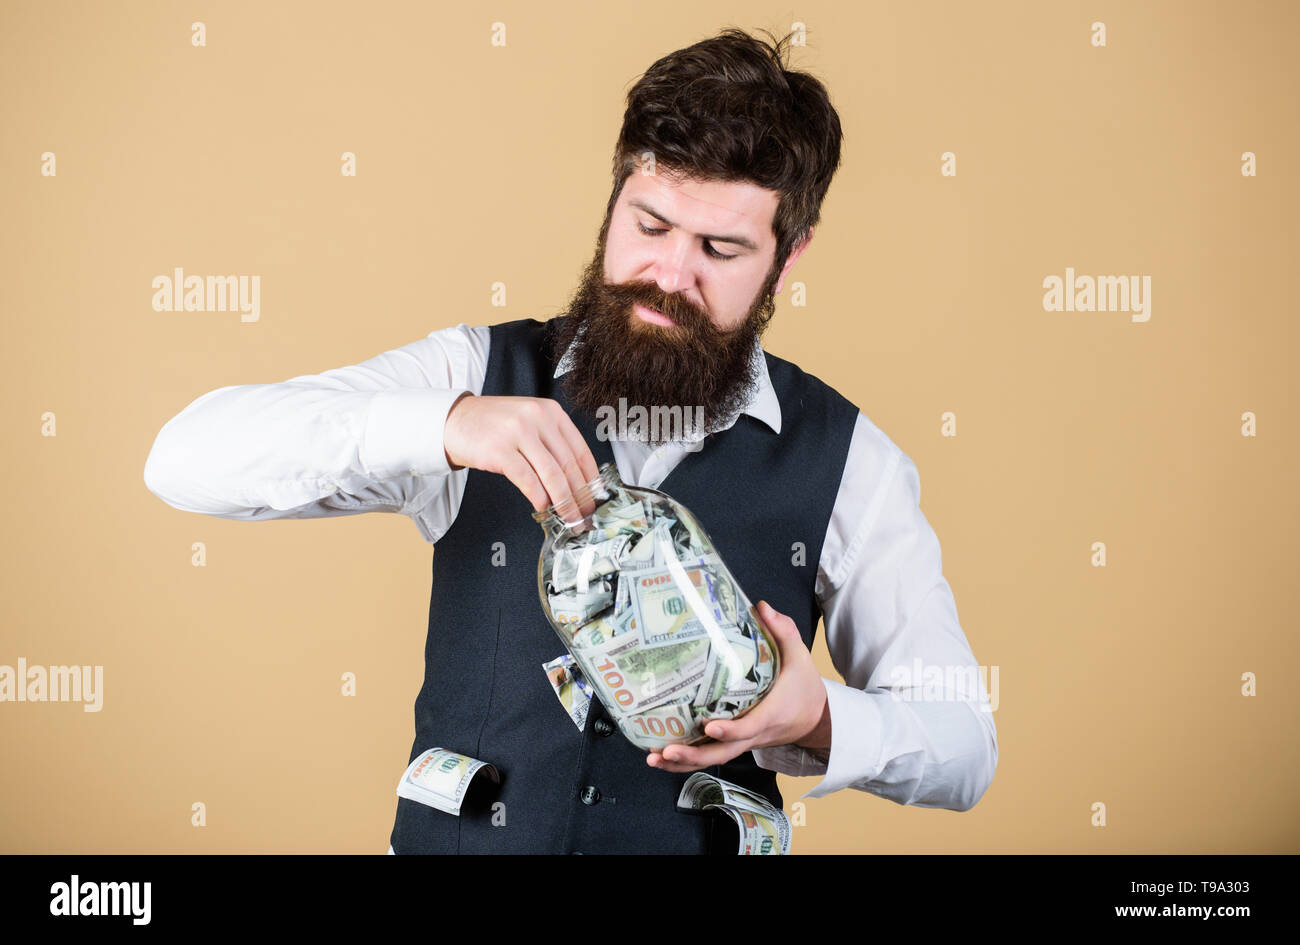 Making an investment. Businessman taking cash money out of glass jar for investing activities. Bearded man investing money into startup business. Investing for future benefit. Investing capitalist. Stock Photo